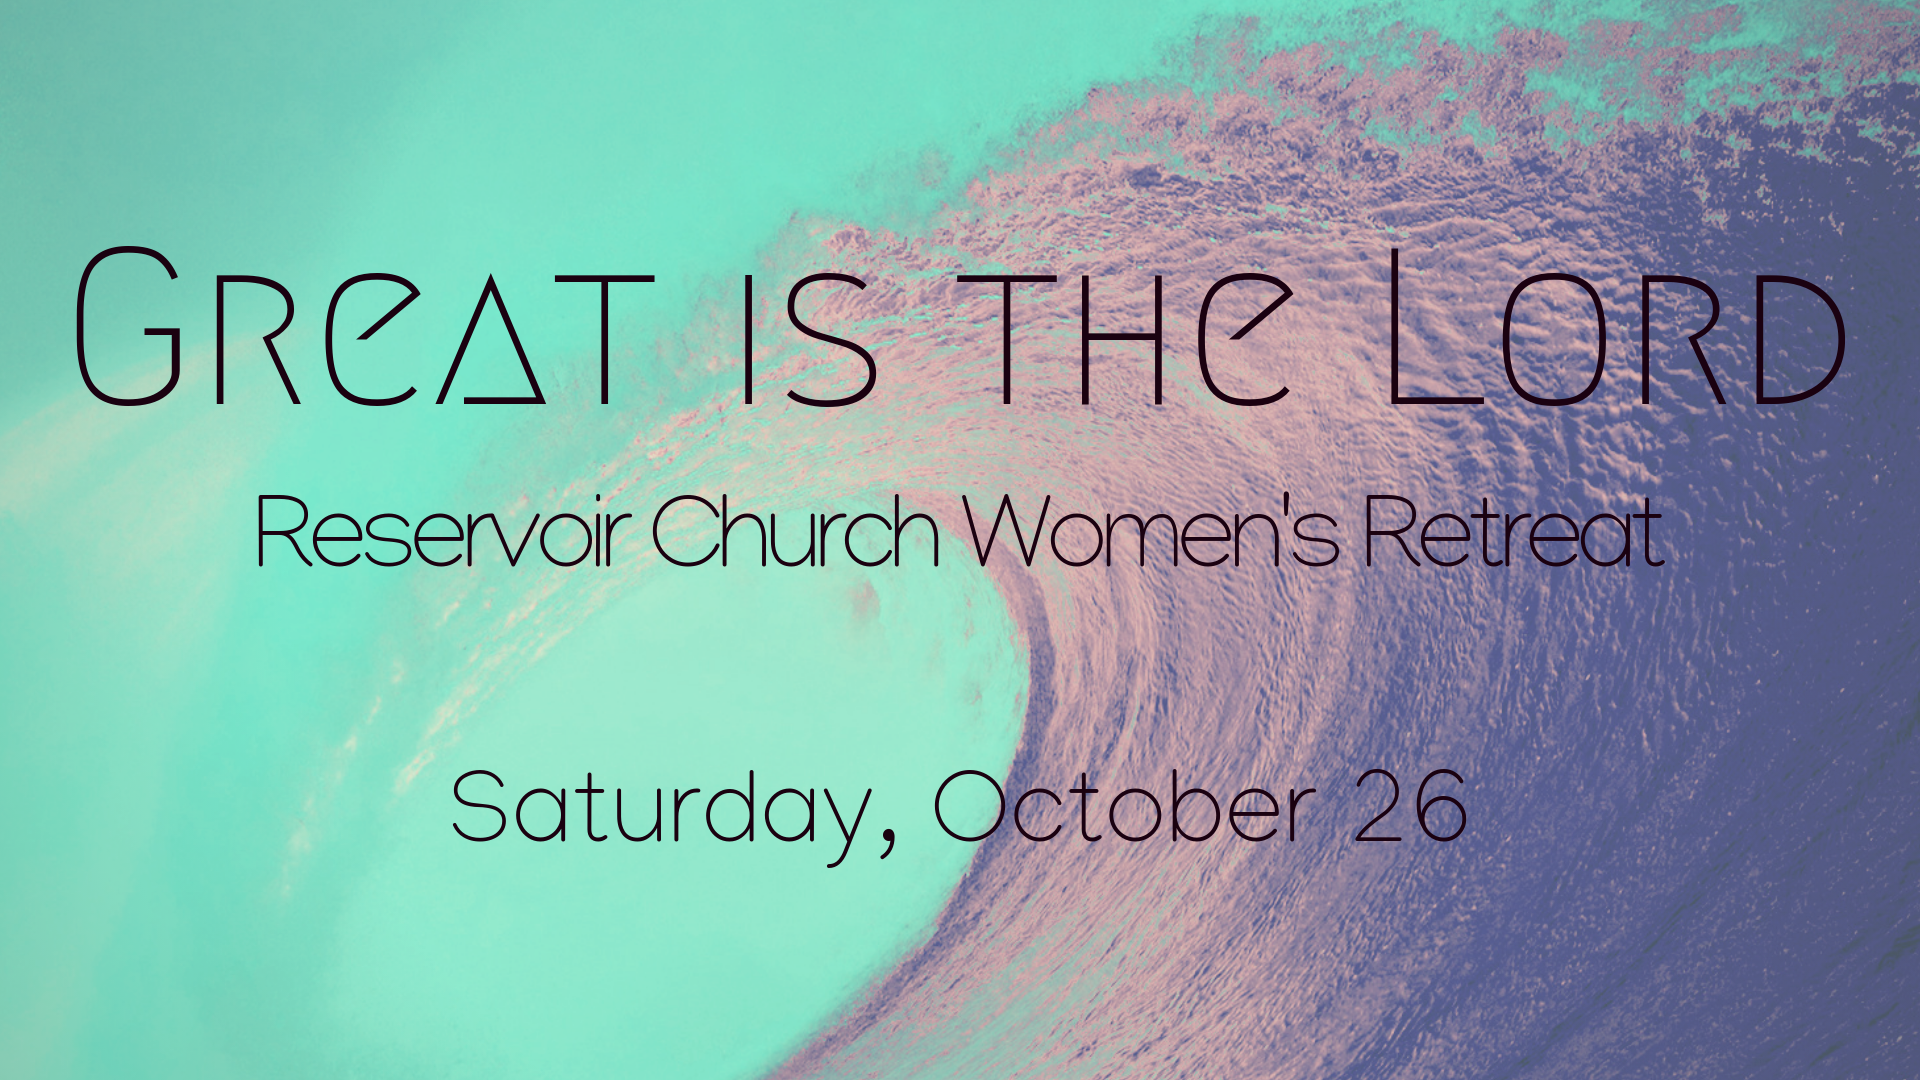 Copy of 2019 Women's retreat.png